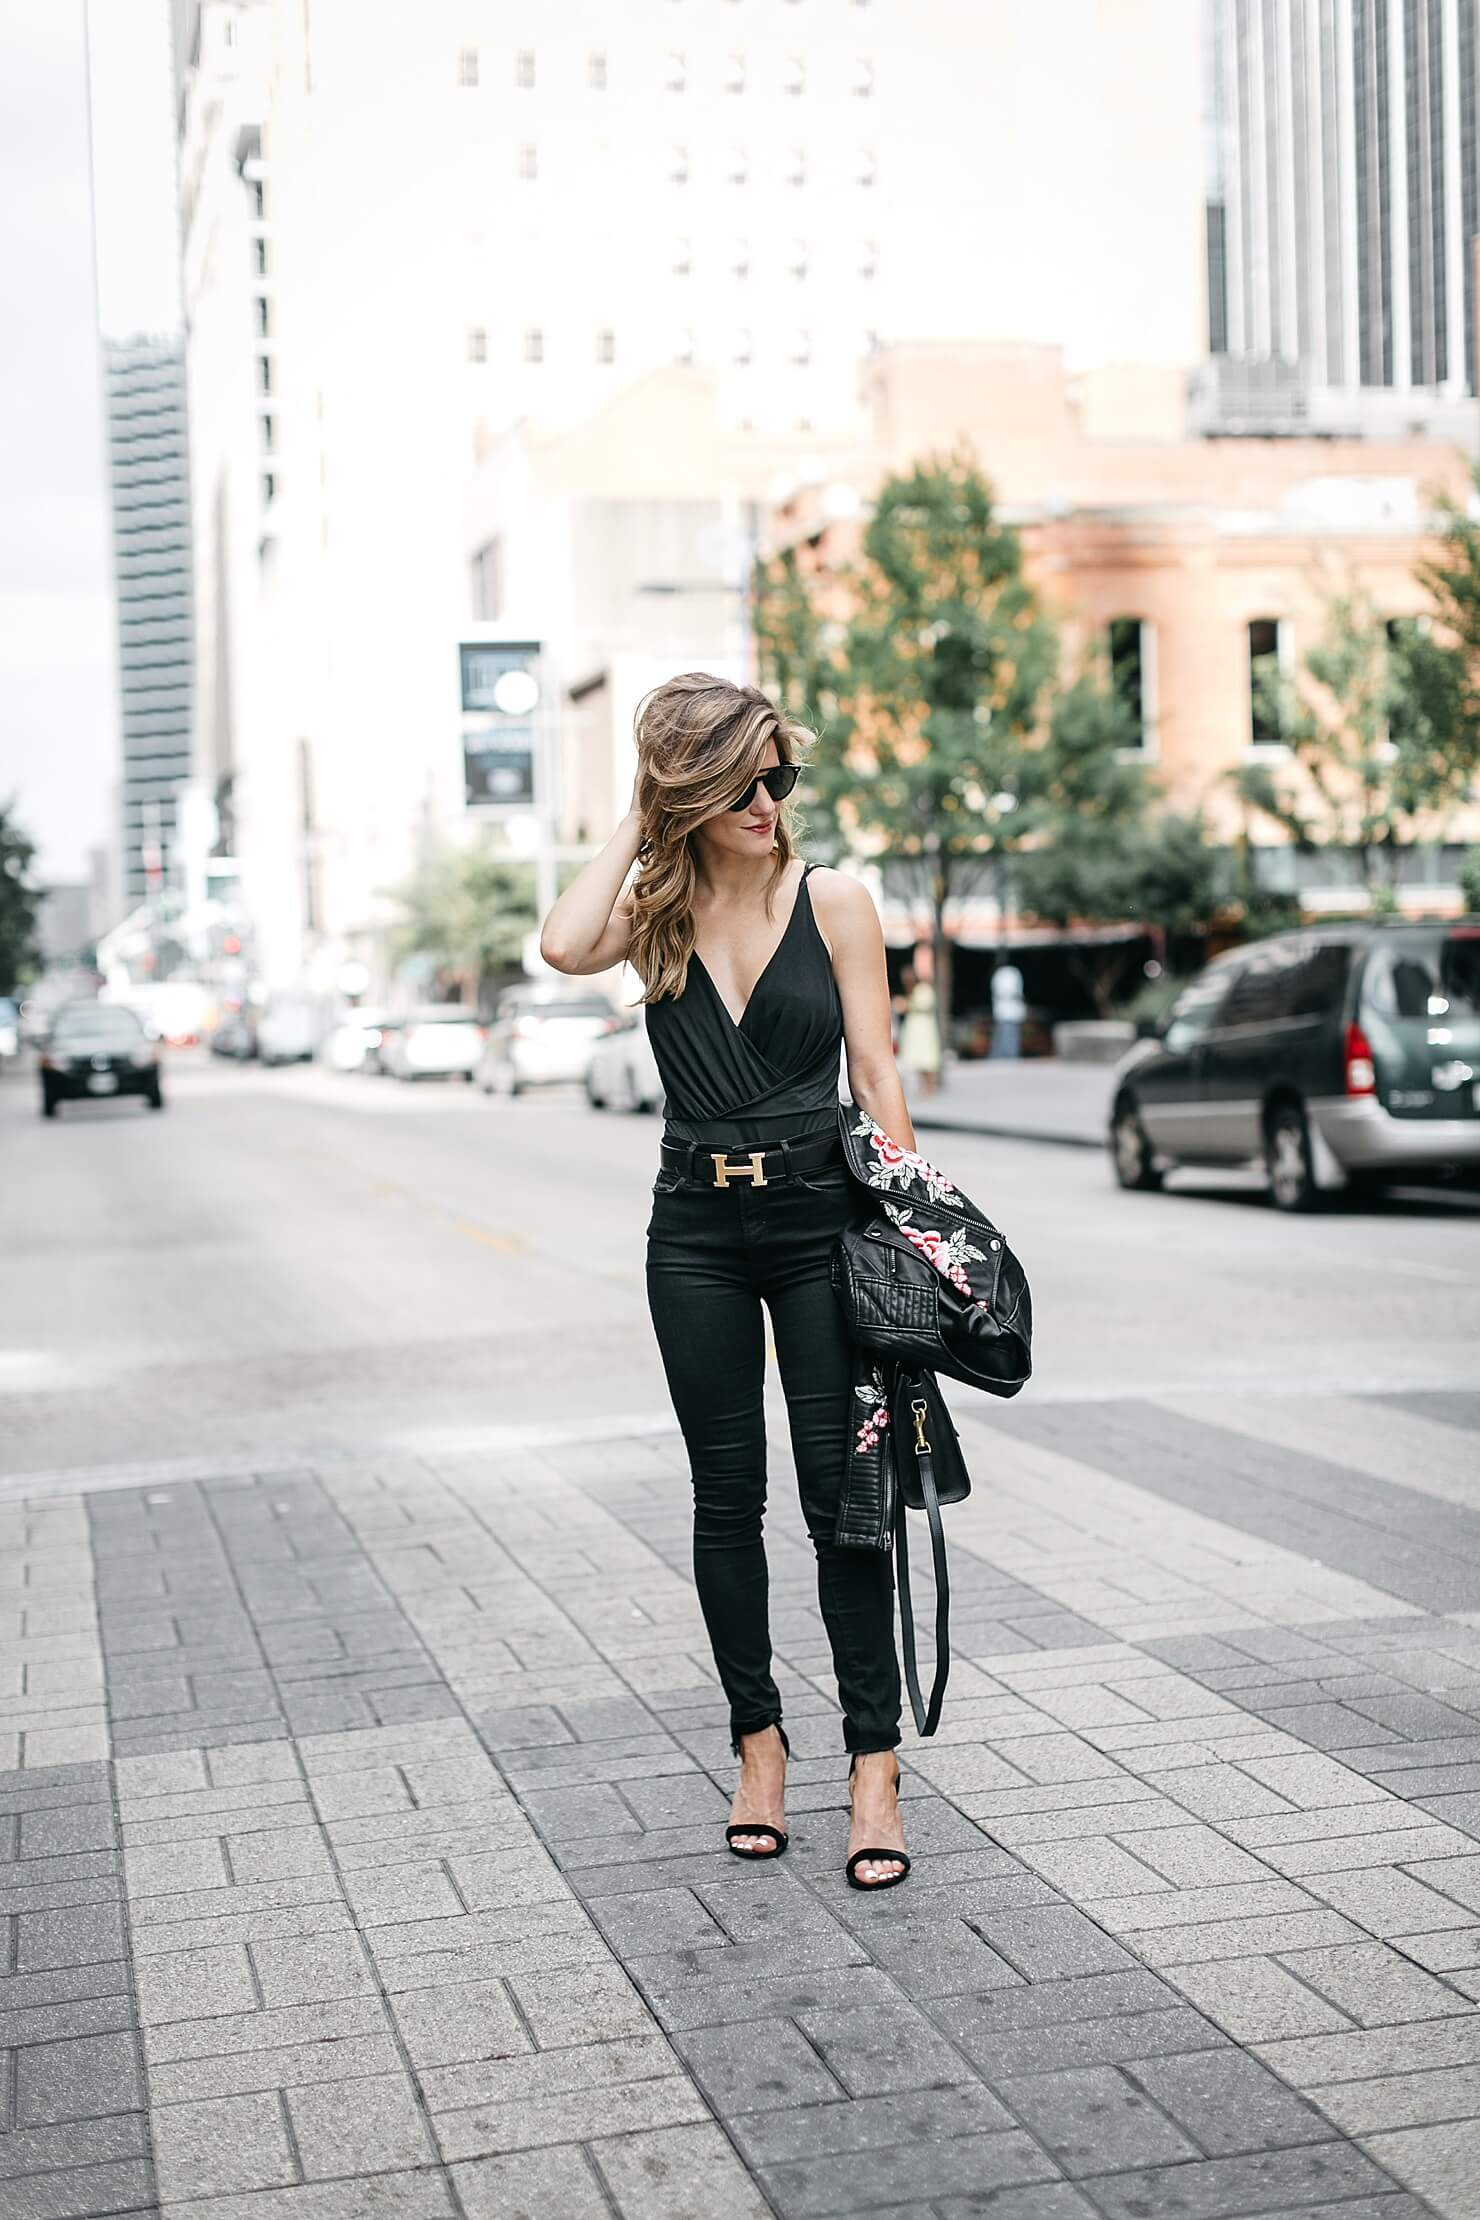 all black bodysuit outfit with embroidered leather jacket, black jeans, statement belt, and heels